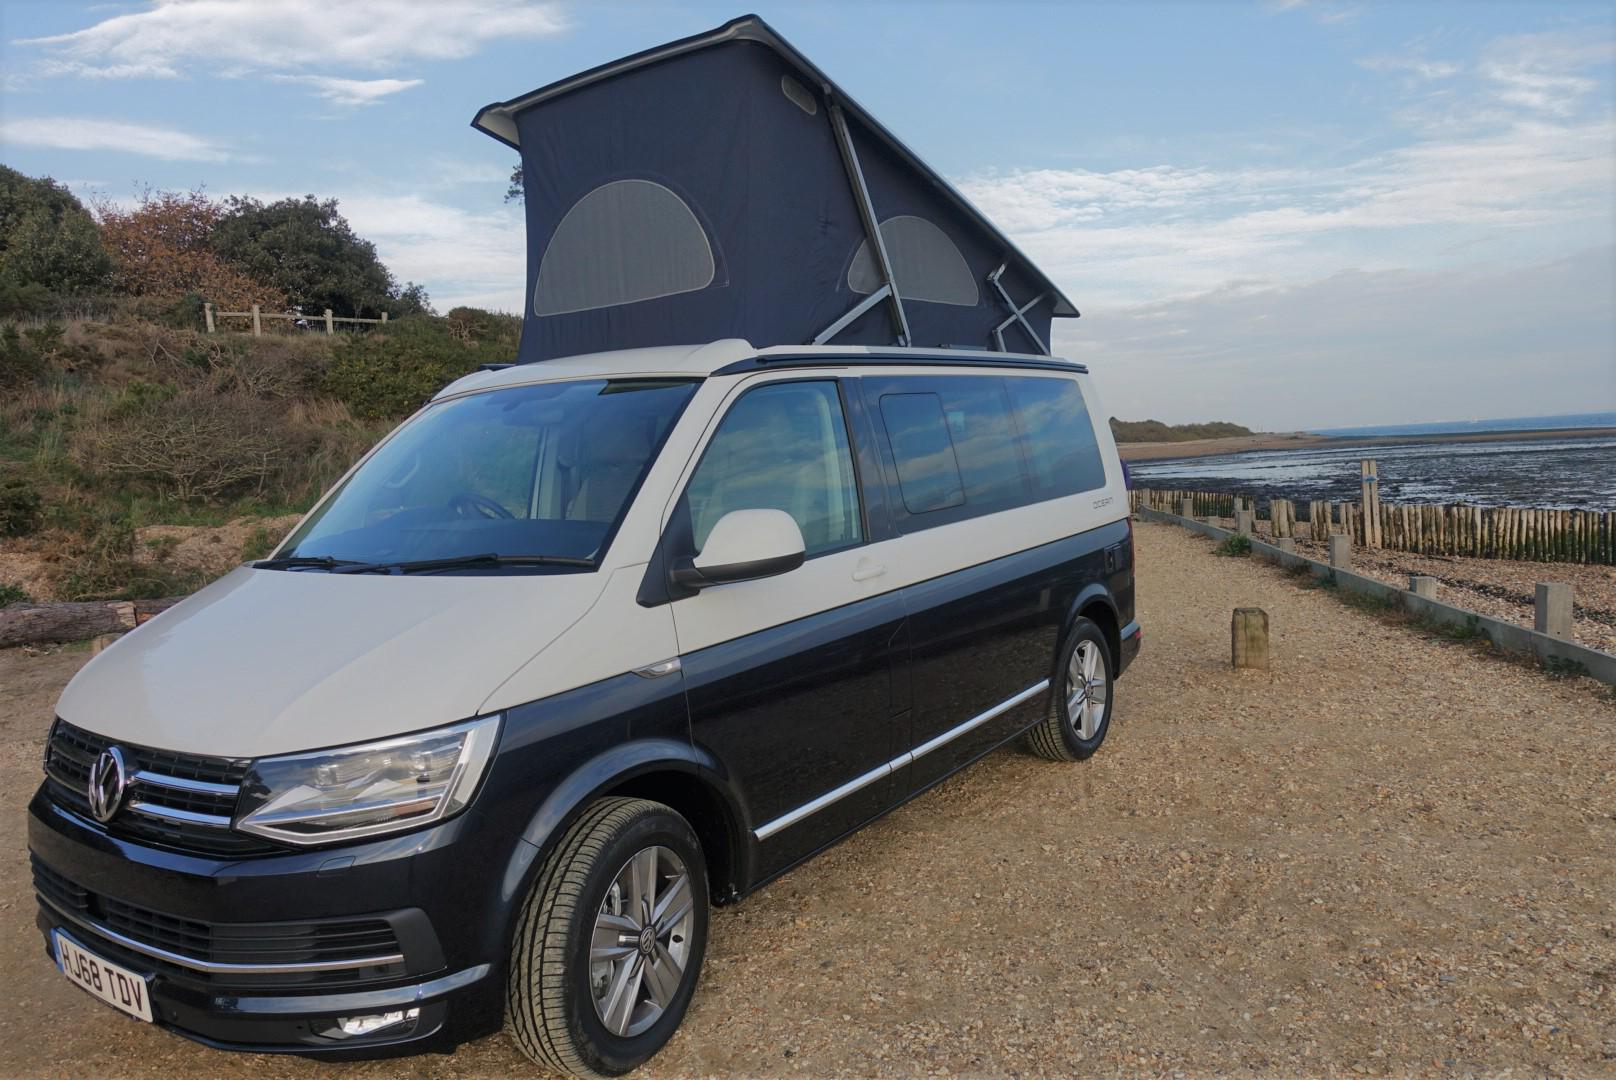 Campervans in South East England holidays at Cool Camping